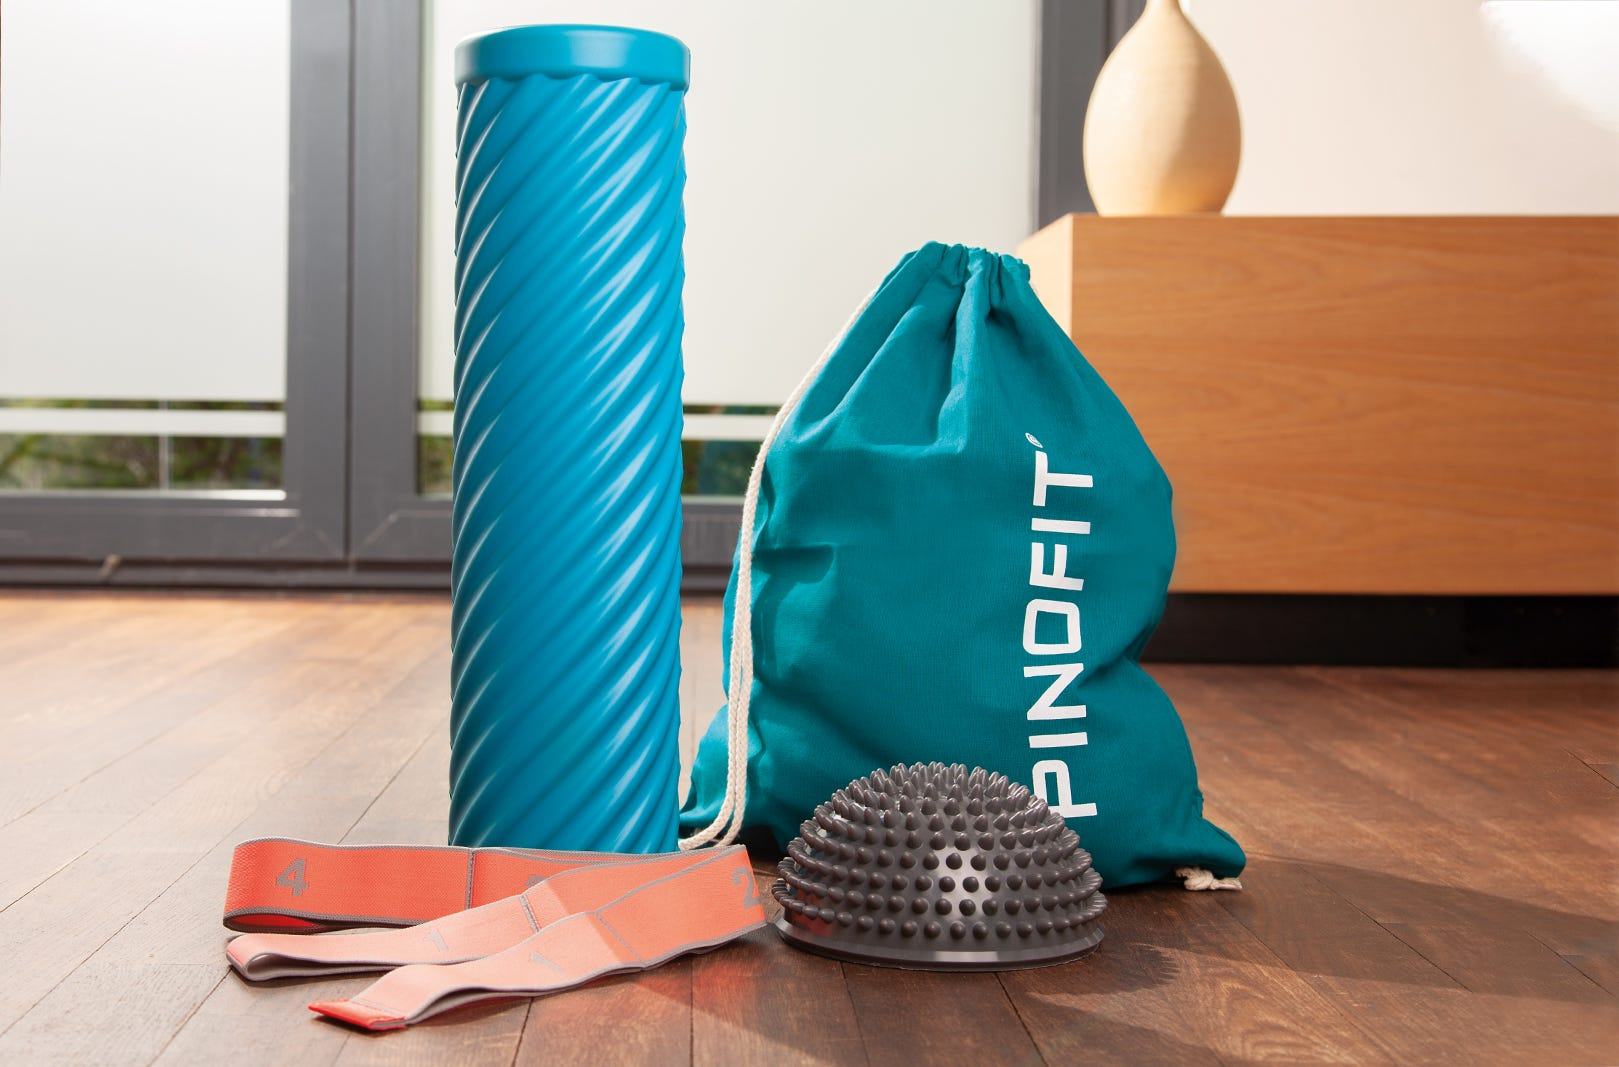 PINOFIT Set - Stay@home & stay fit